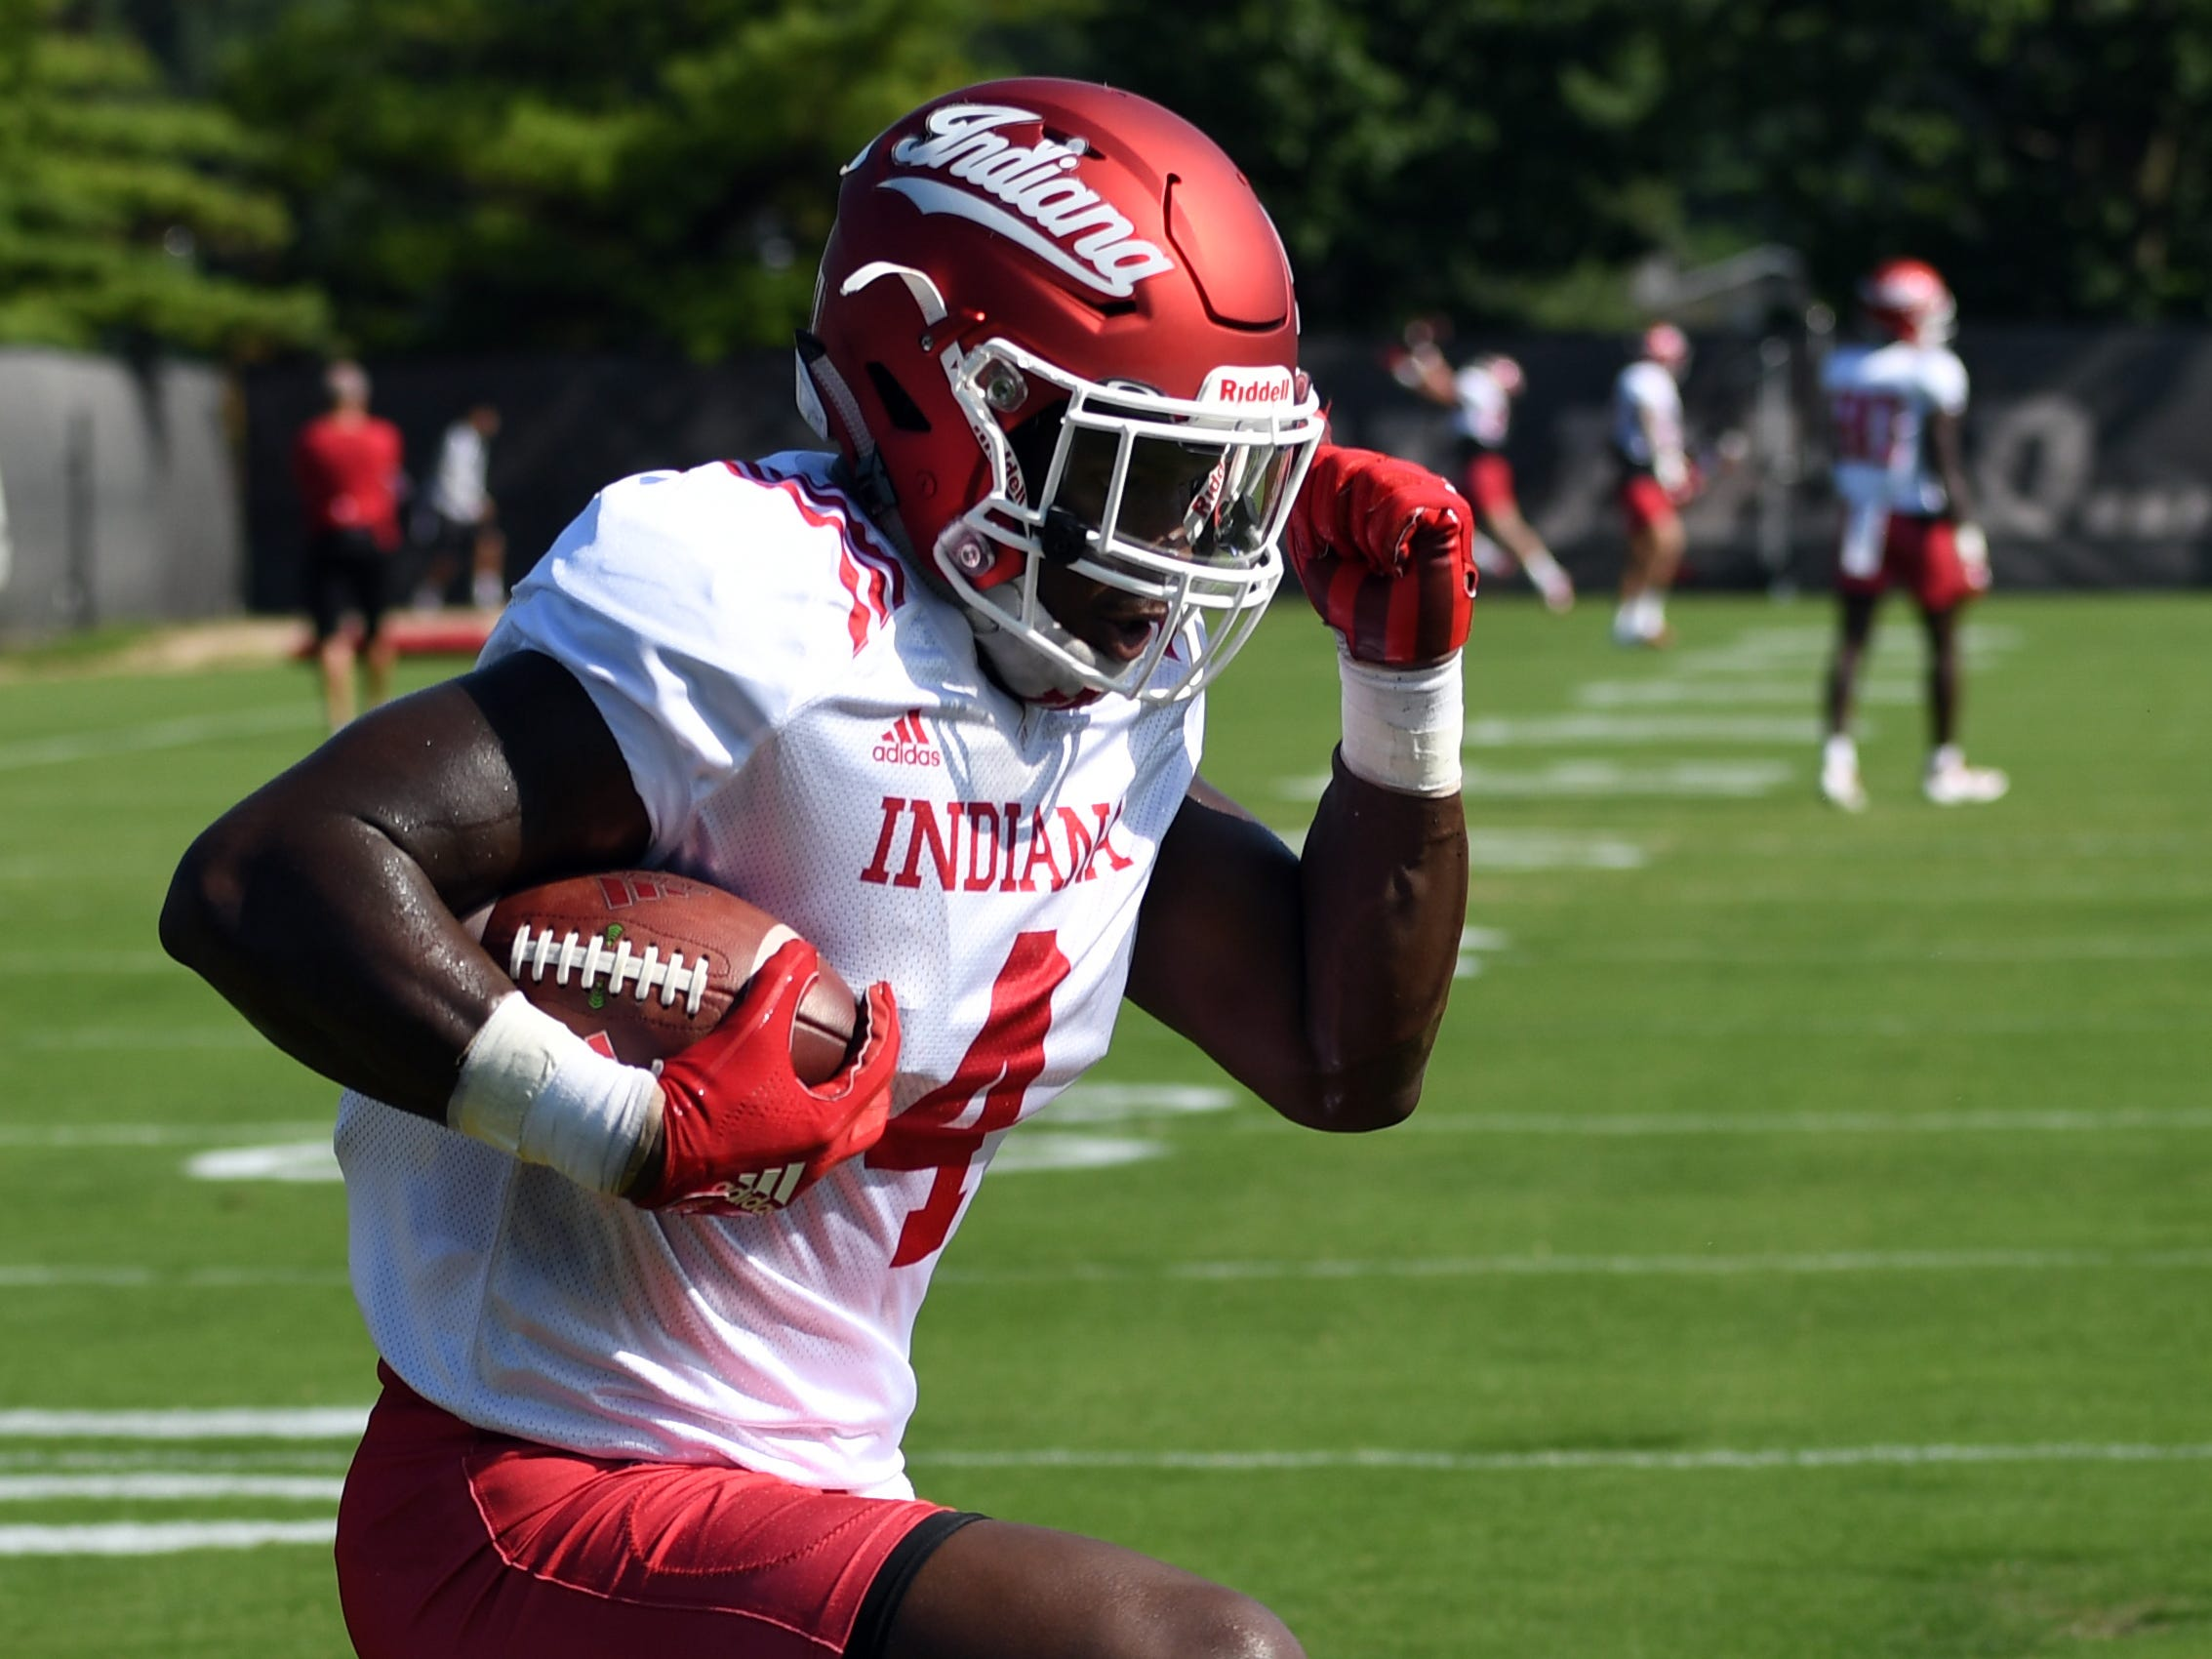 Indiana Hoosiers running back Morgan Ellison (4) goes through drills during practice at Mellencamp Pavilion in Bloomington, Ind., on Monday, August 6, 2018.